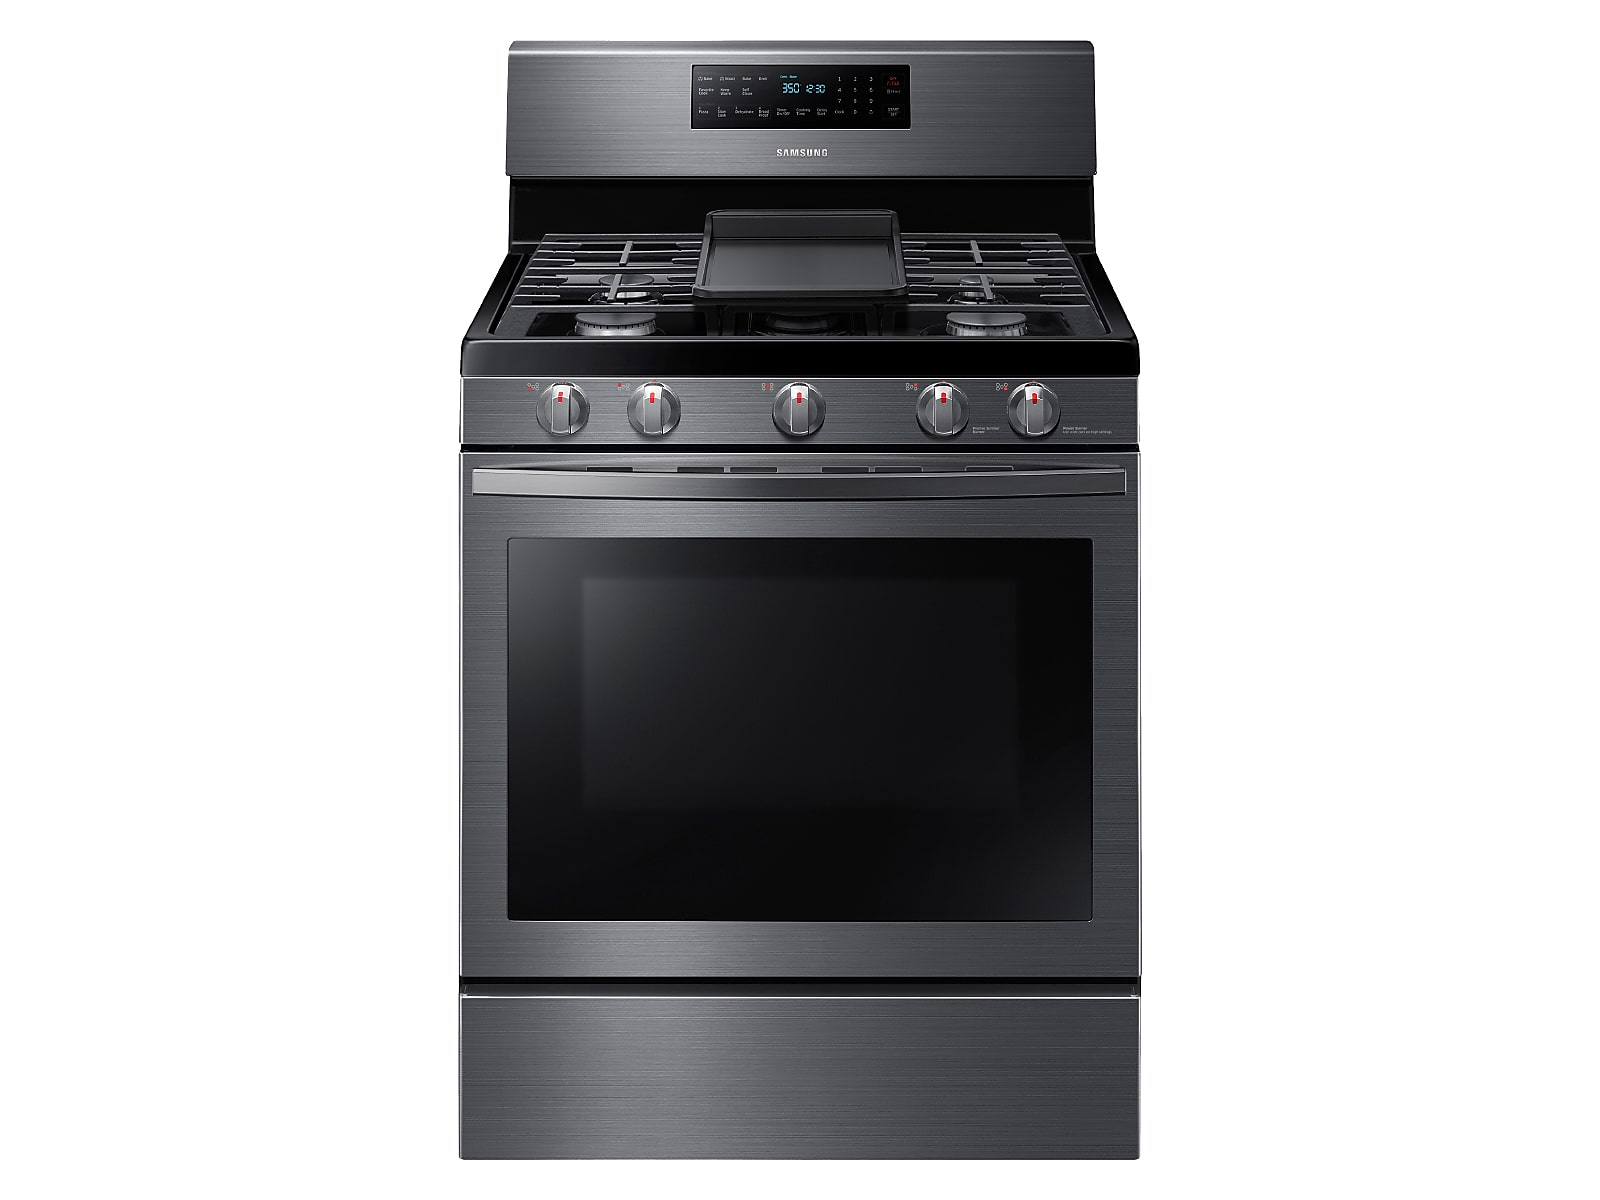 Samsung 5.8 cu. ft. Freestanding Gas Range with Convection in Black Stainless Steel(NX58R5601SG/AA)